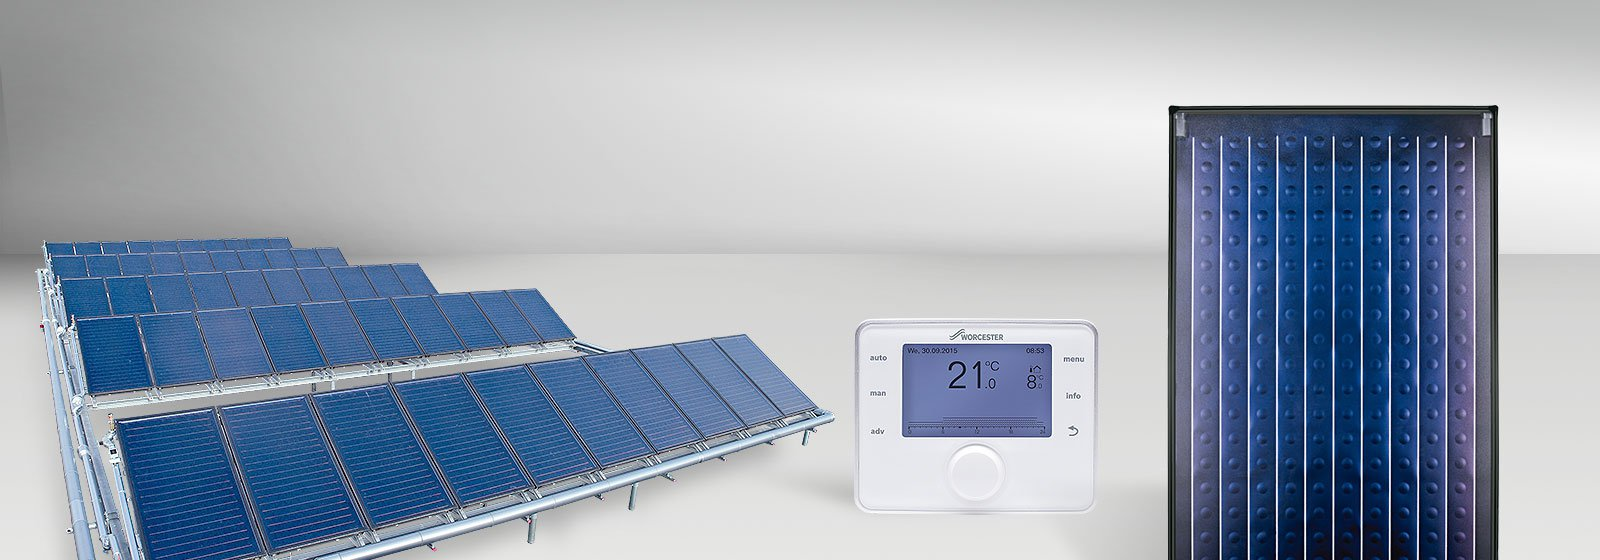 Components for solar thermal